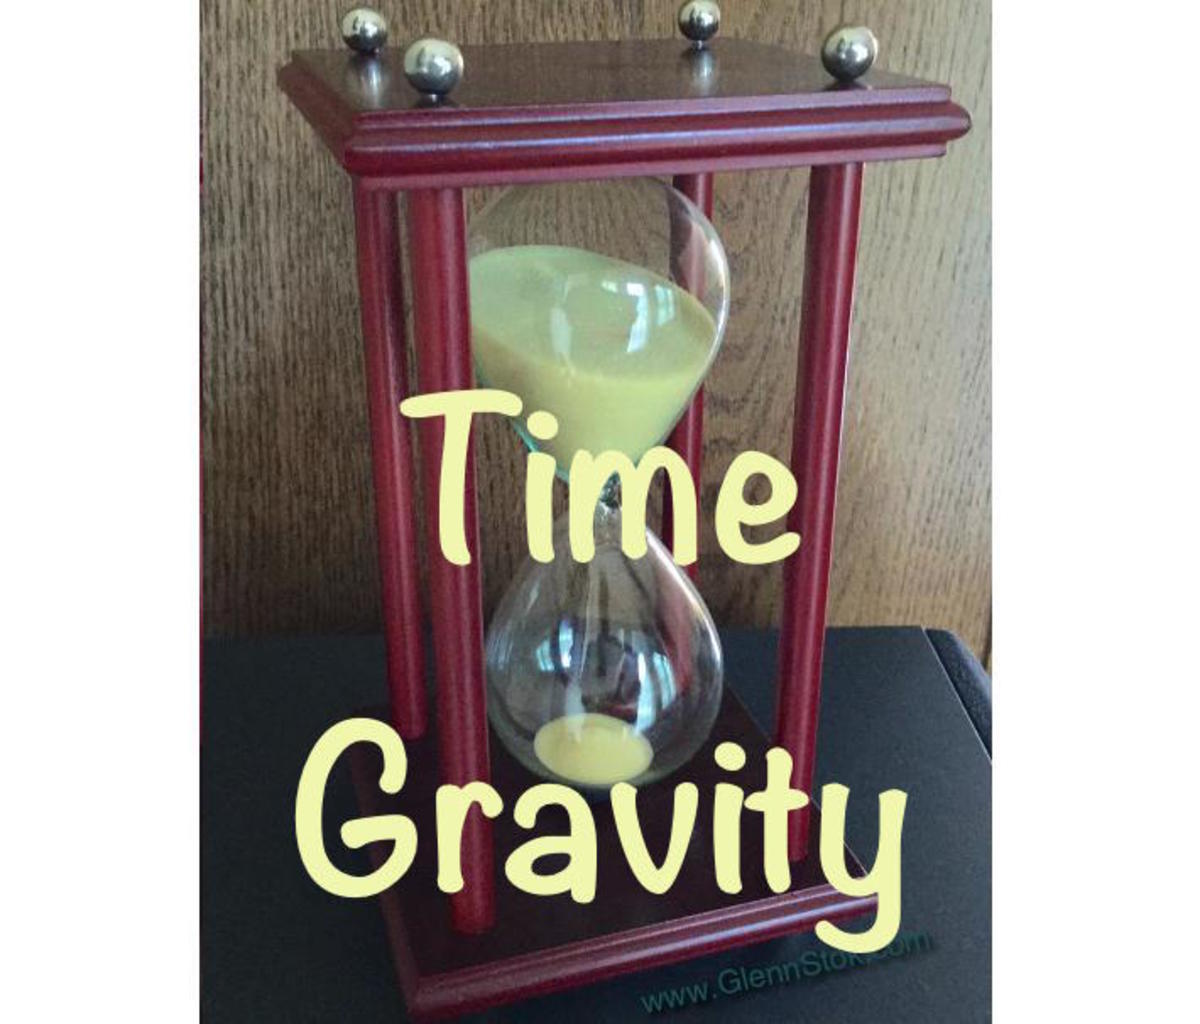 Time Gravity: A Theory About the Progress of Time